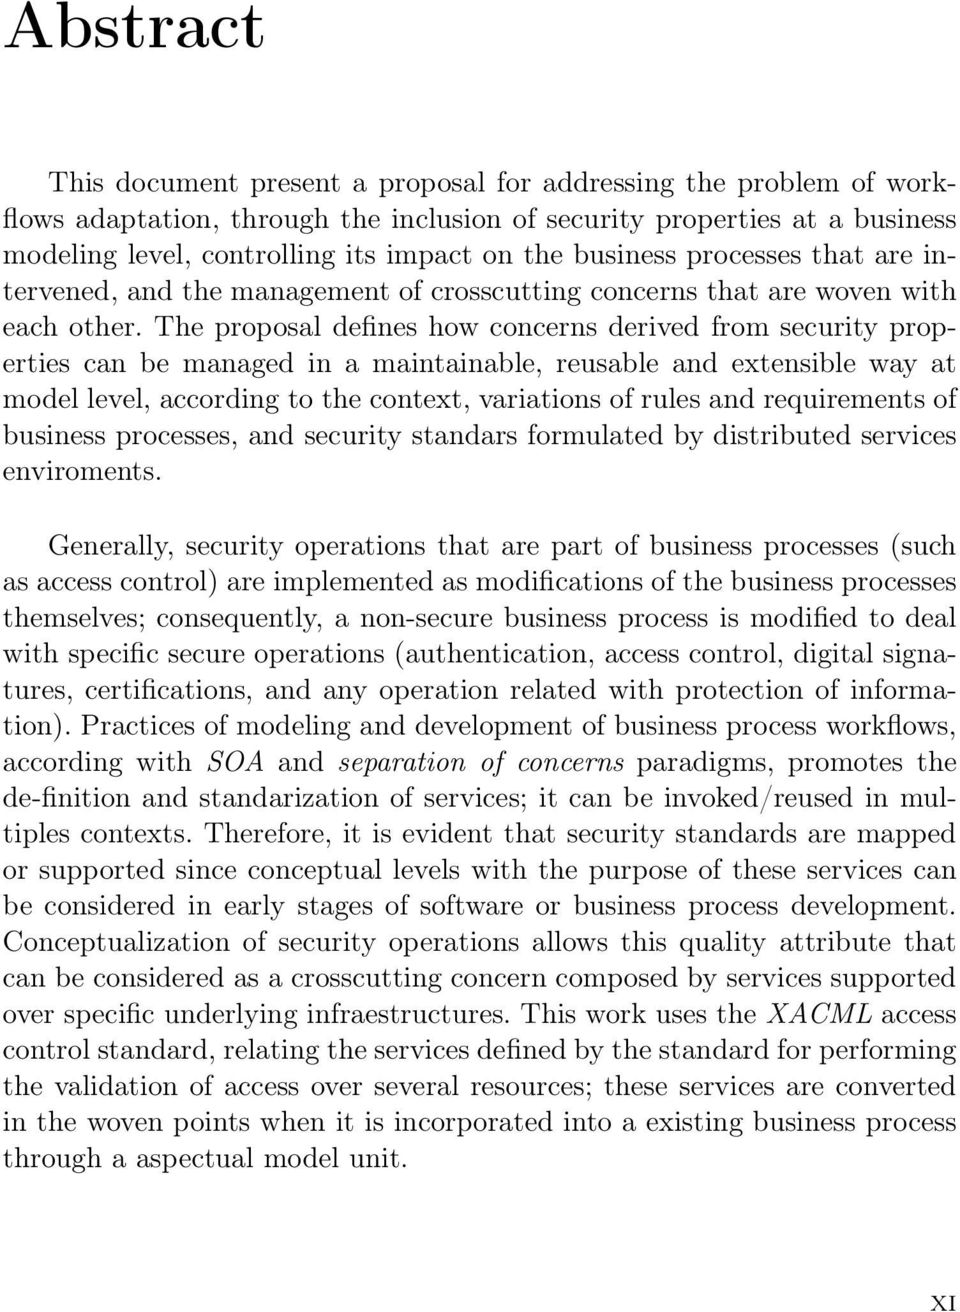 The proposal defines how concerns derived from security properties can be managed in a maintainable, reusable and extensible way at model level, according to the context, variations of rules and